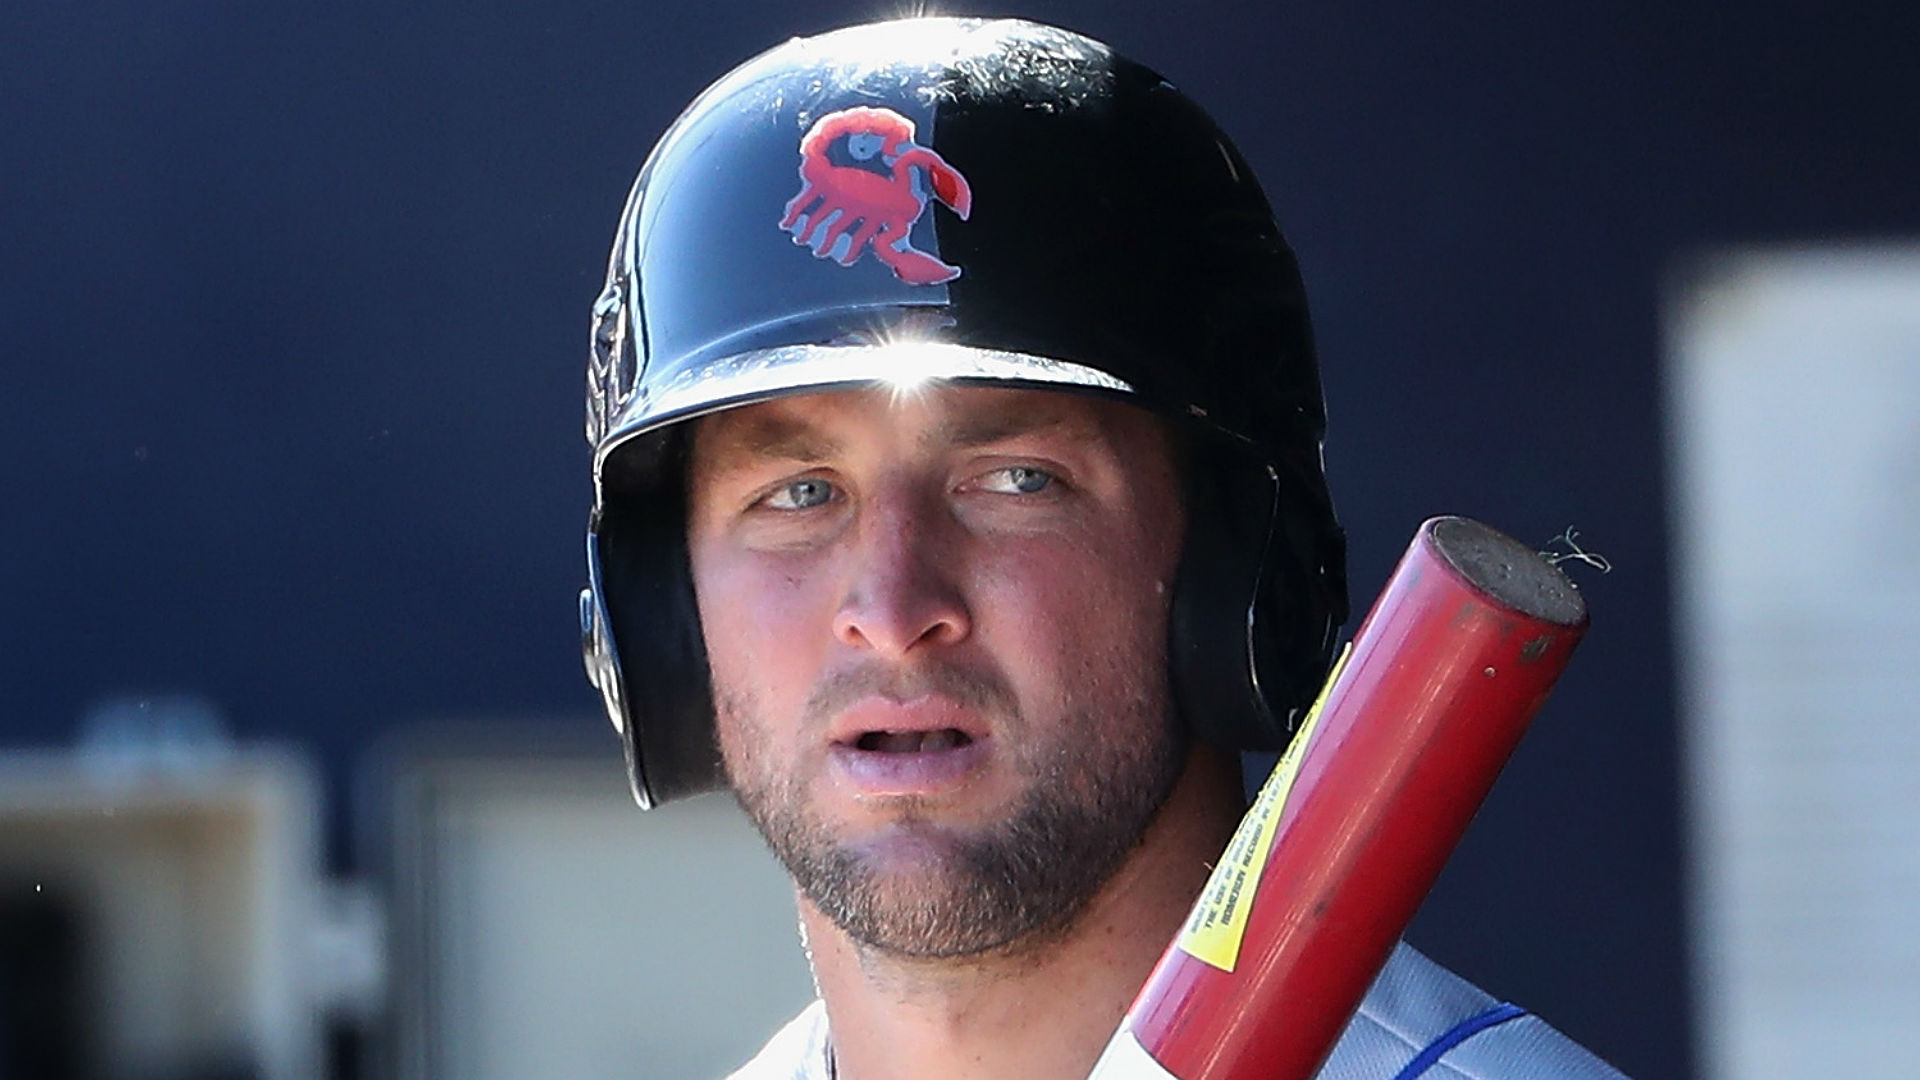 Tim Tebow hit by pitch in head with fastball, stays in game